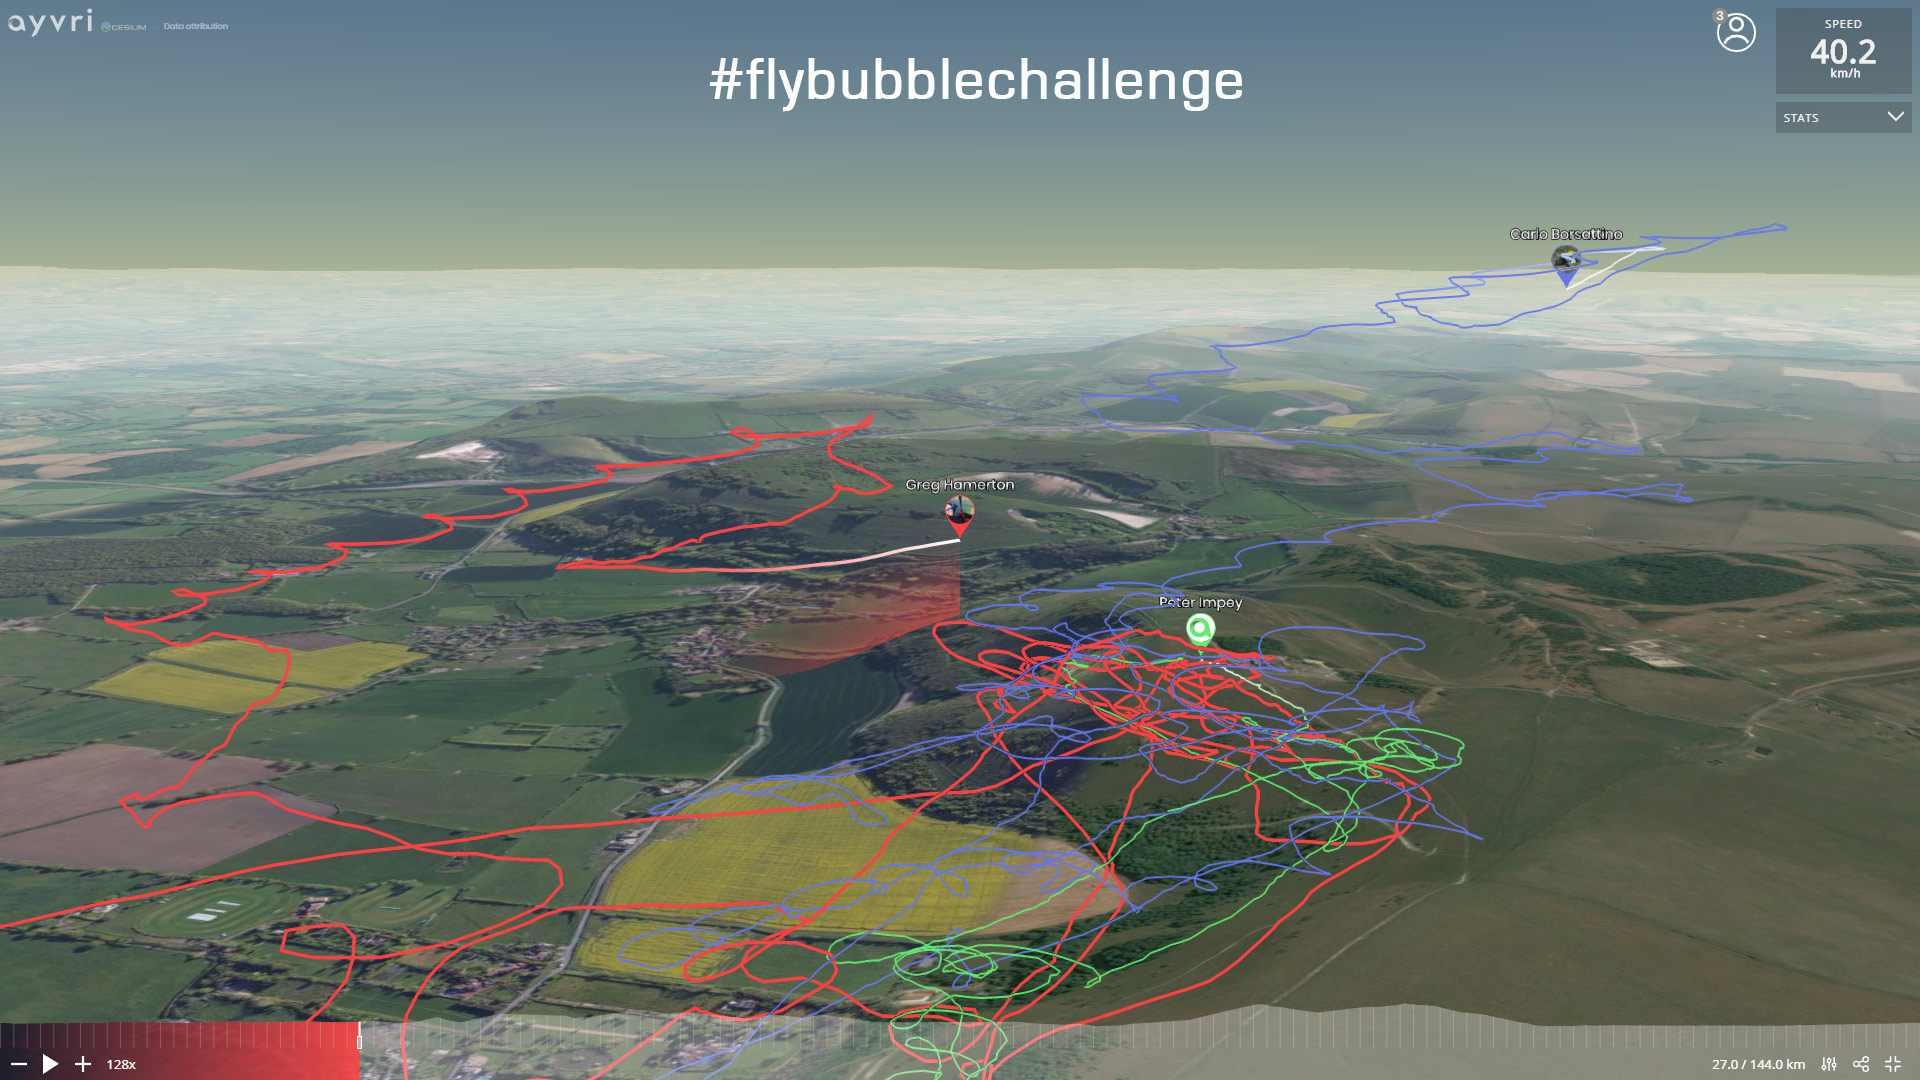 The Flybubble Challenge 2019: tracks